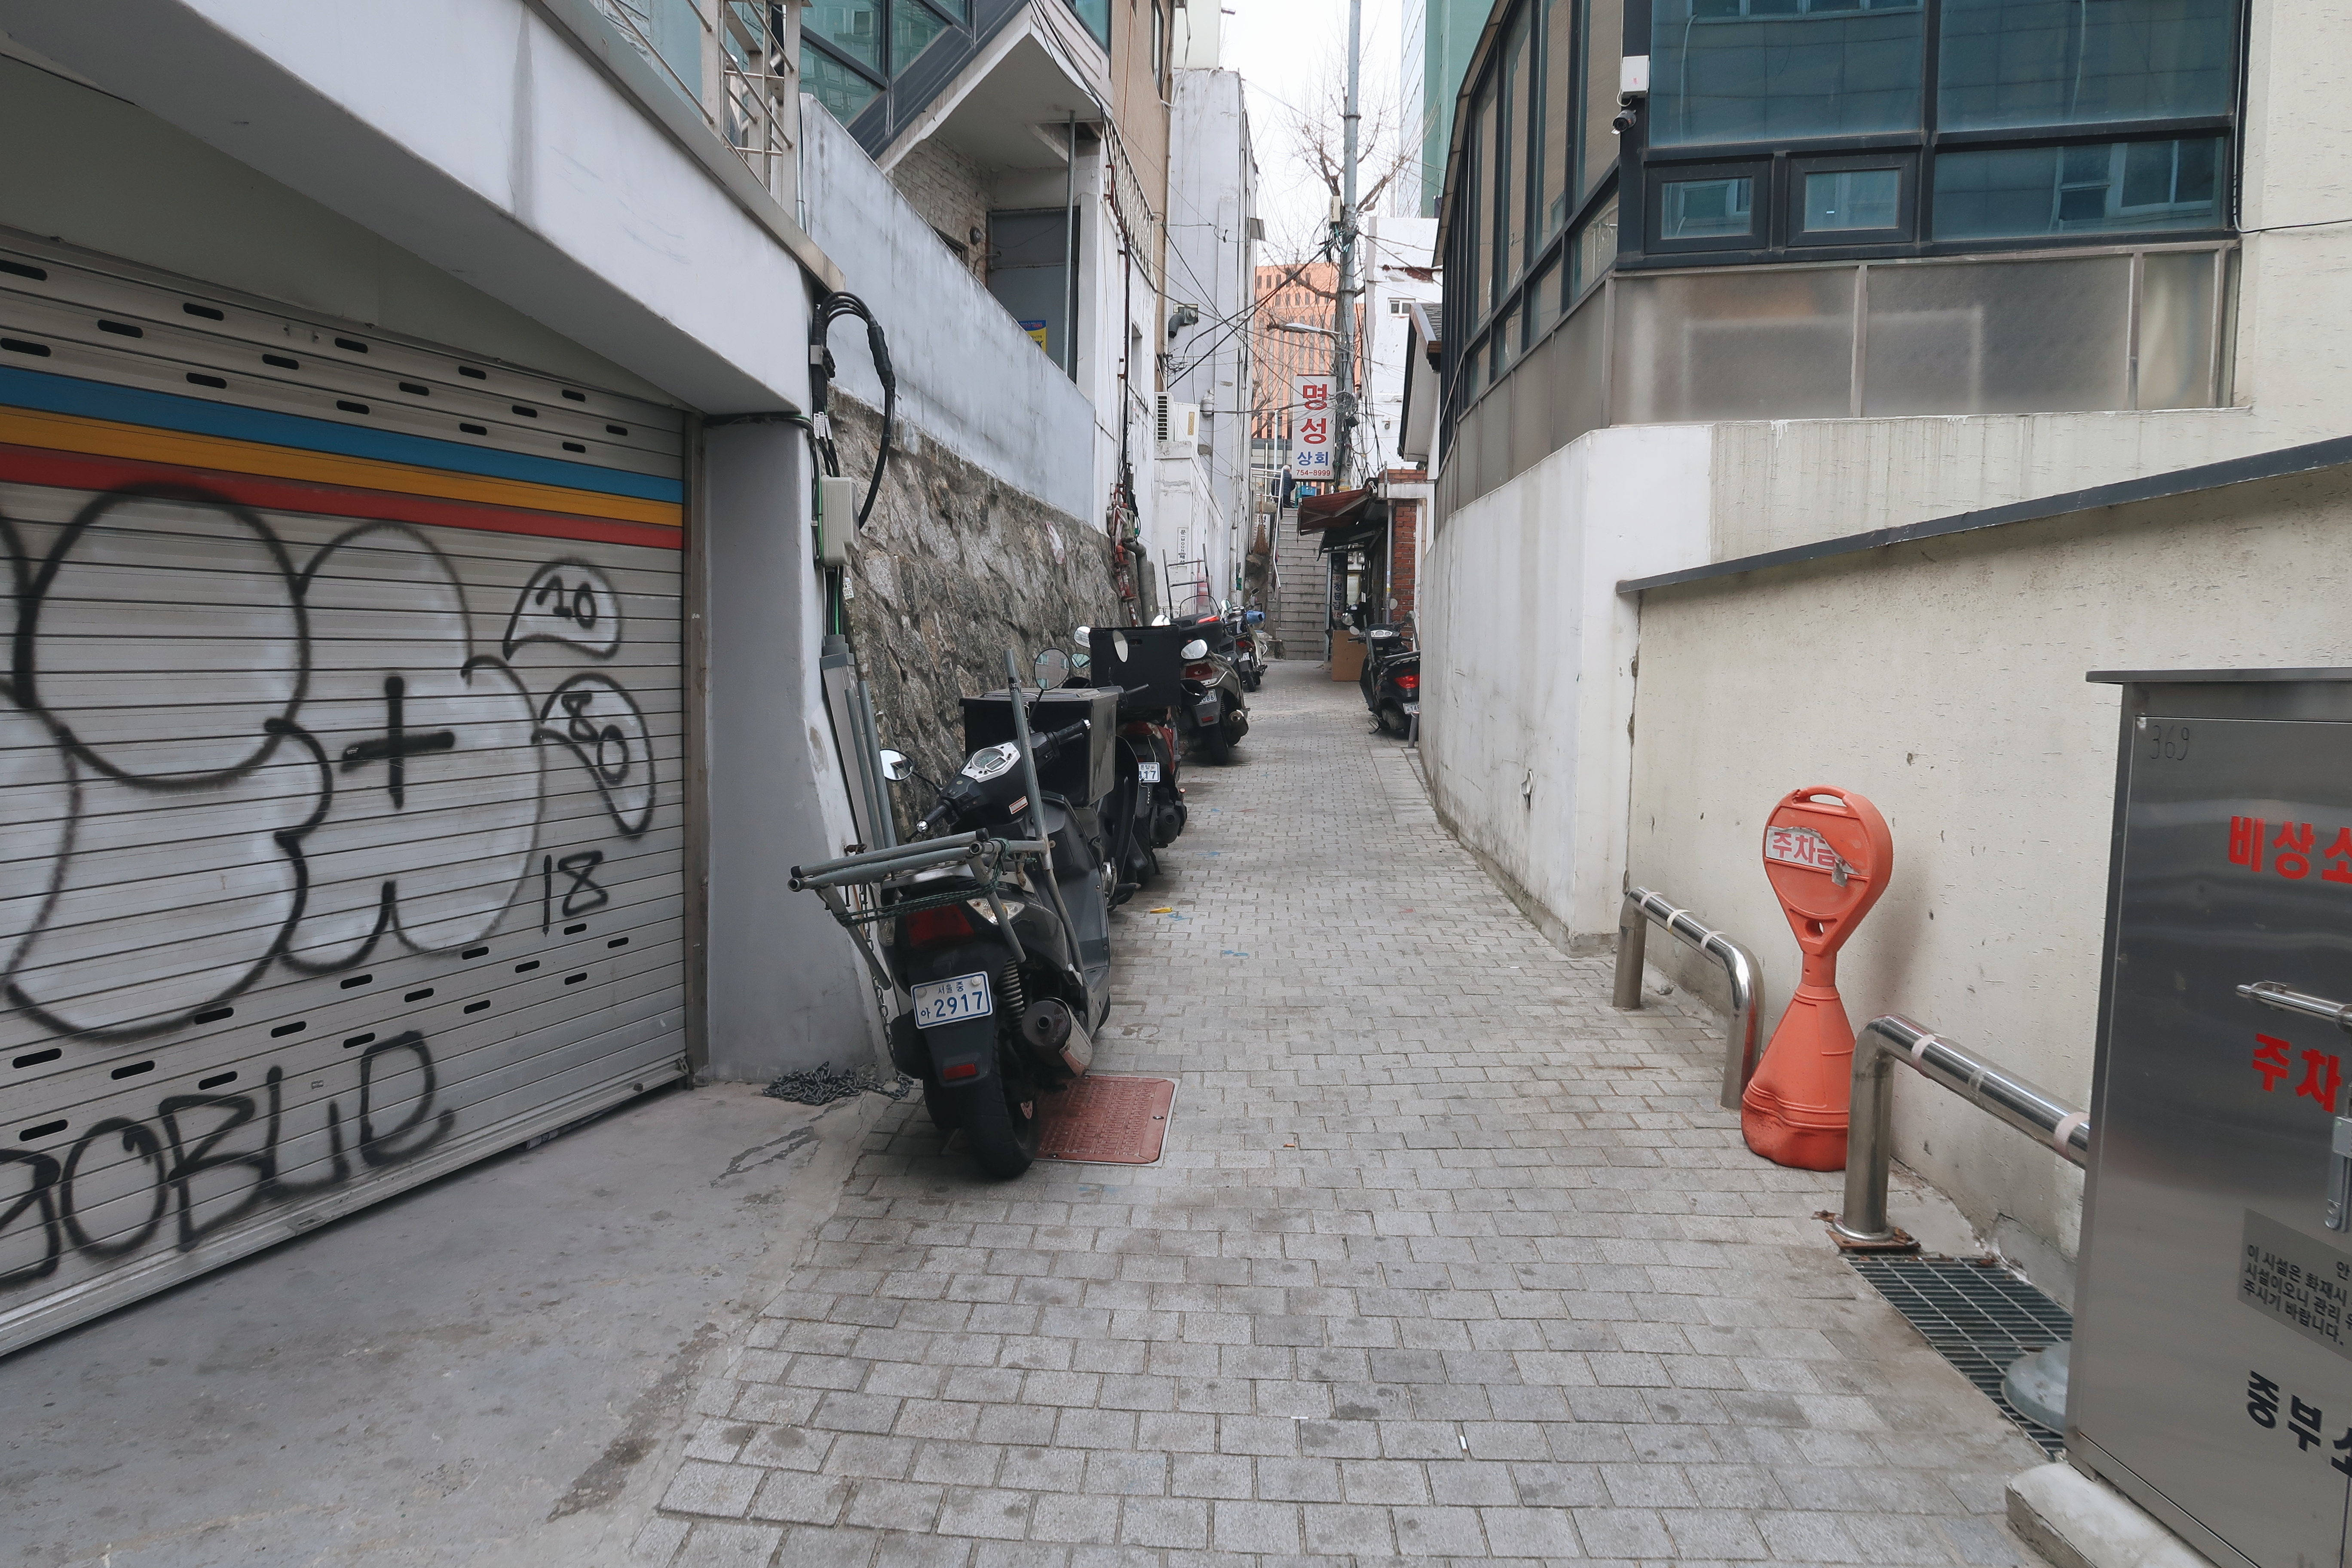 A photograph of a small street between buildings, with some grafiti on a garage door and motorcycles lining the sides (Seoul).